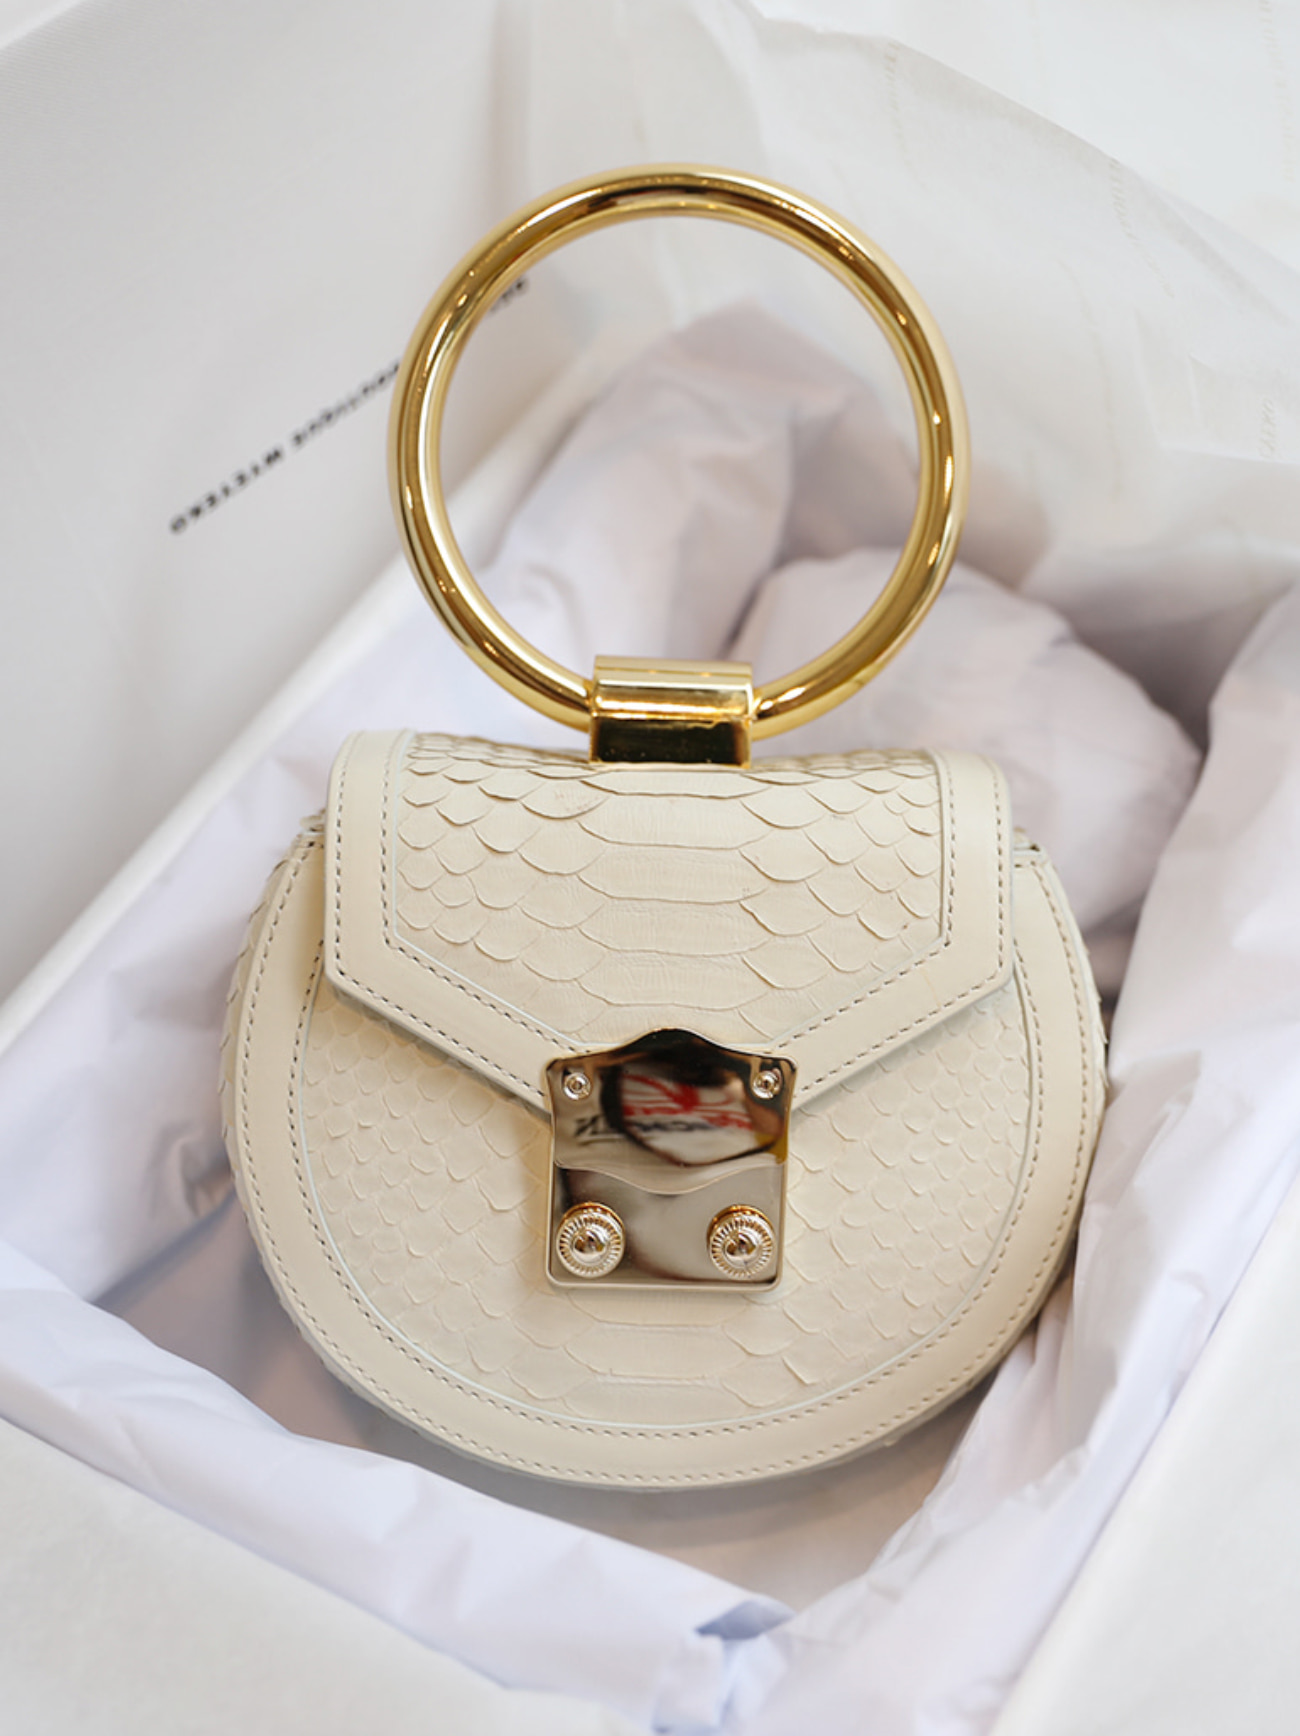 Myeyeko Exclusive Line - LOVE Madelein Bag 마들렌백 / CREAM IVORY PYTHON